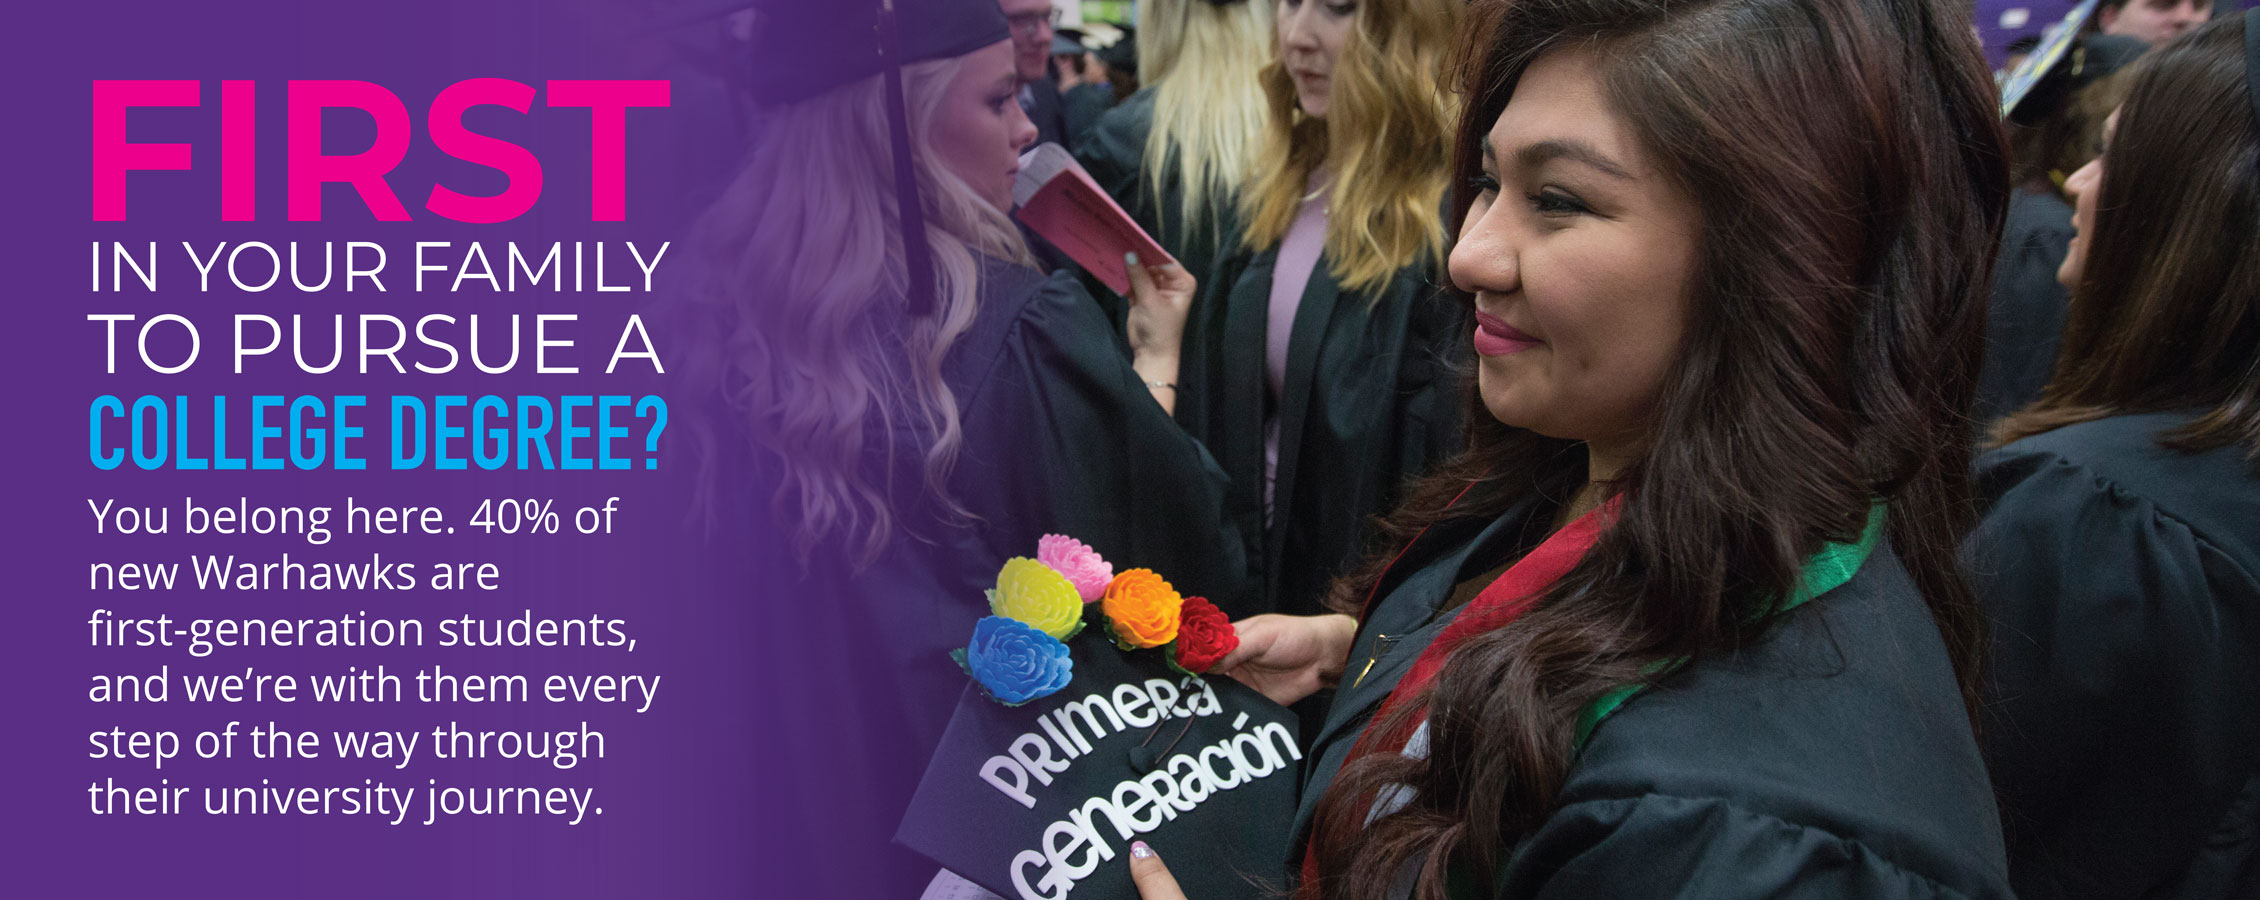 Student with a decorated cap that says primera generación at commencement.